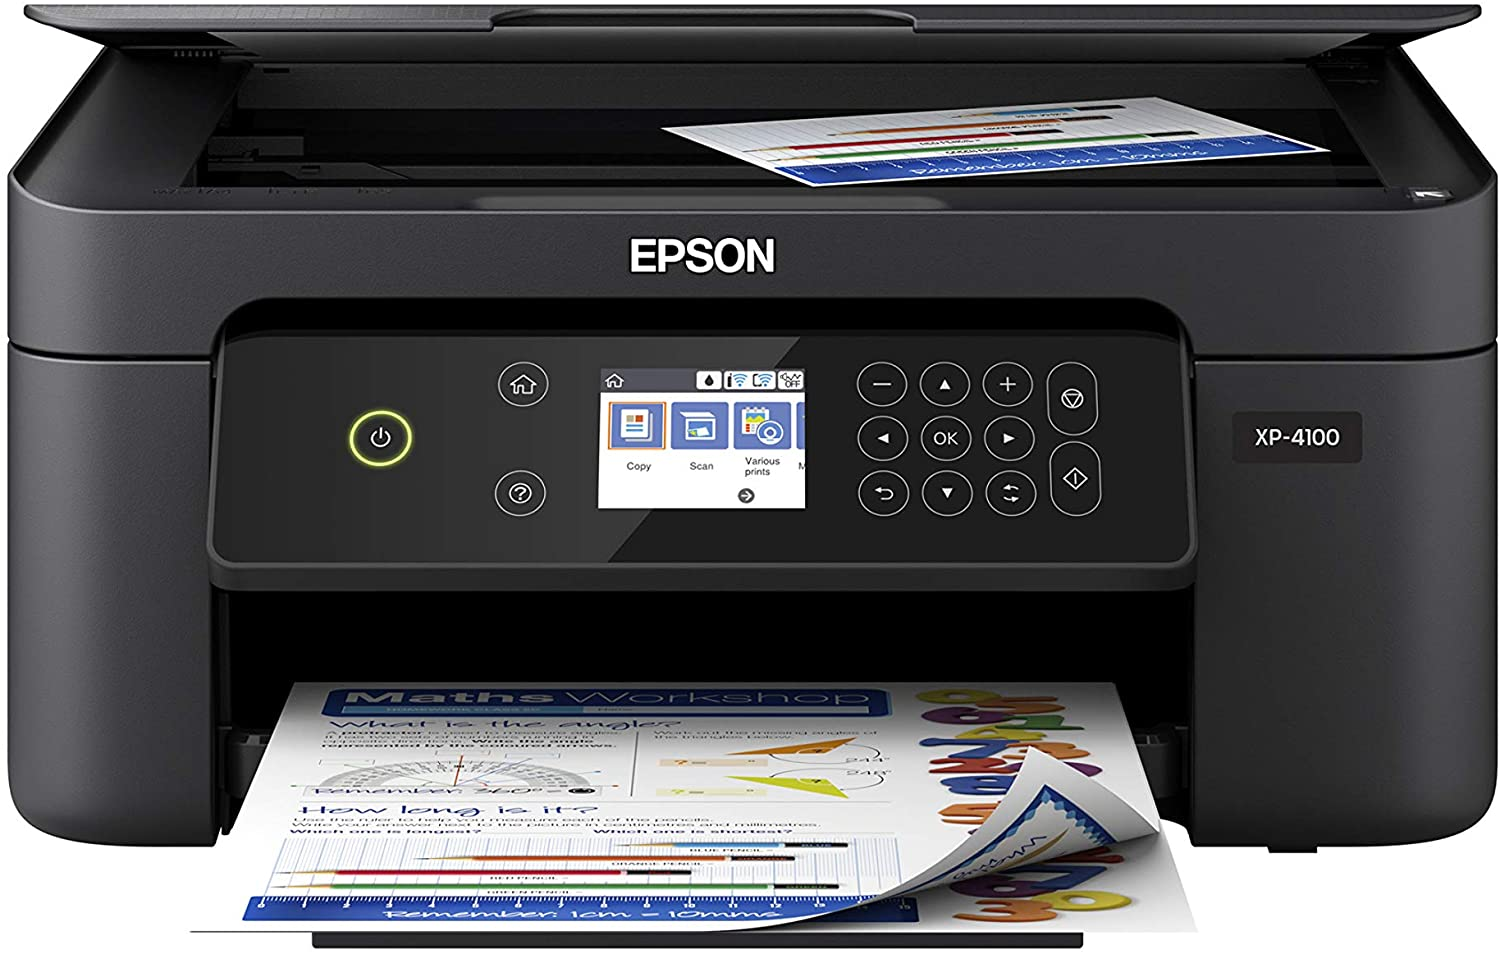 Epson Expression Home XP-4100 Wireless Color Printer with Scanner and Copier uk reviews